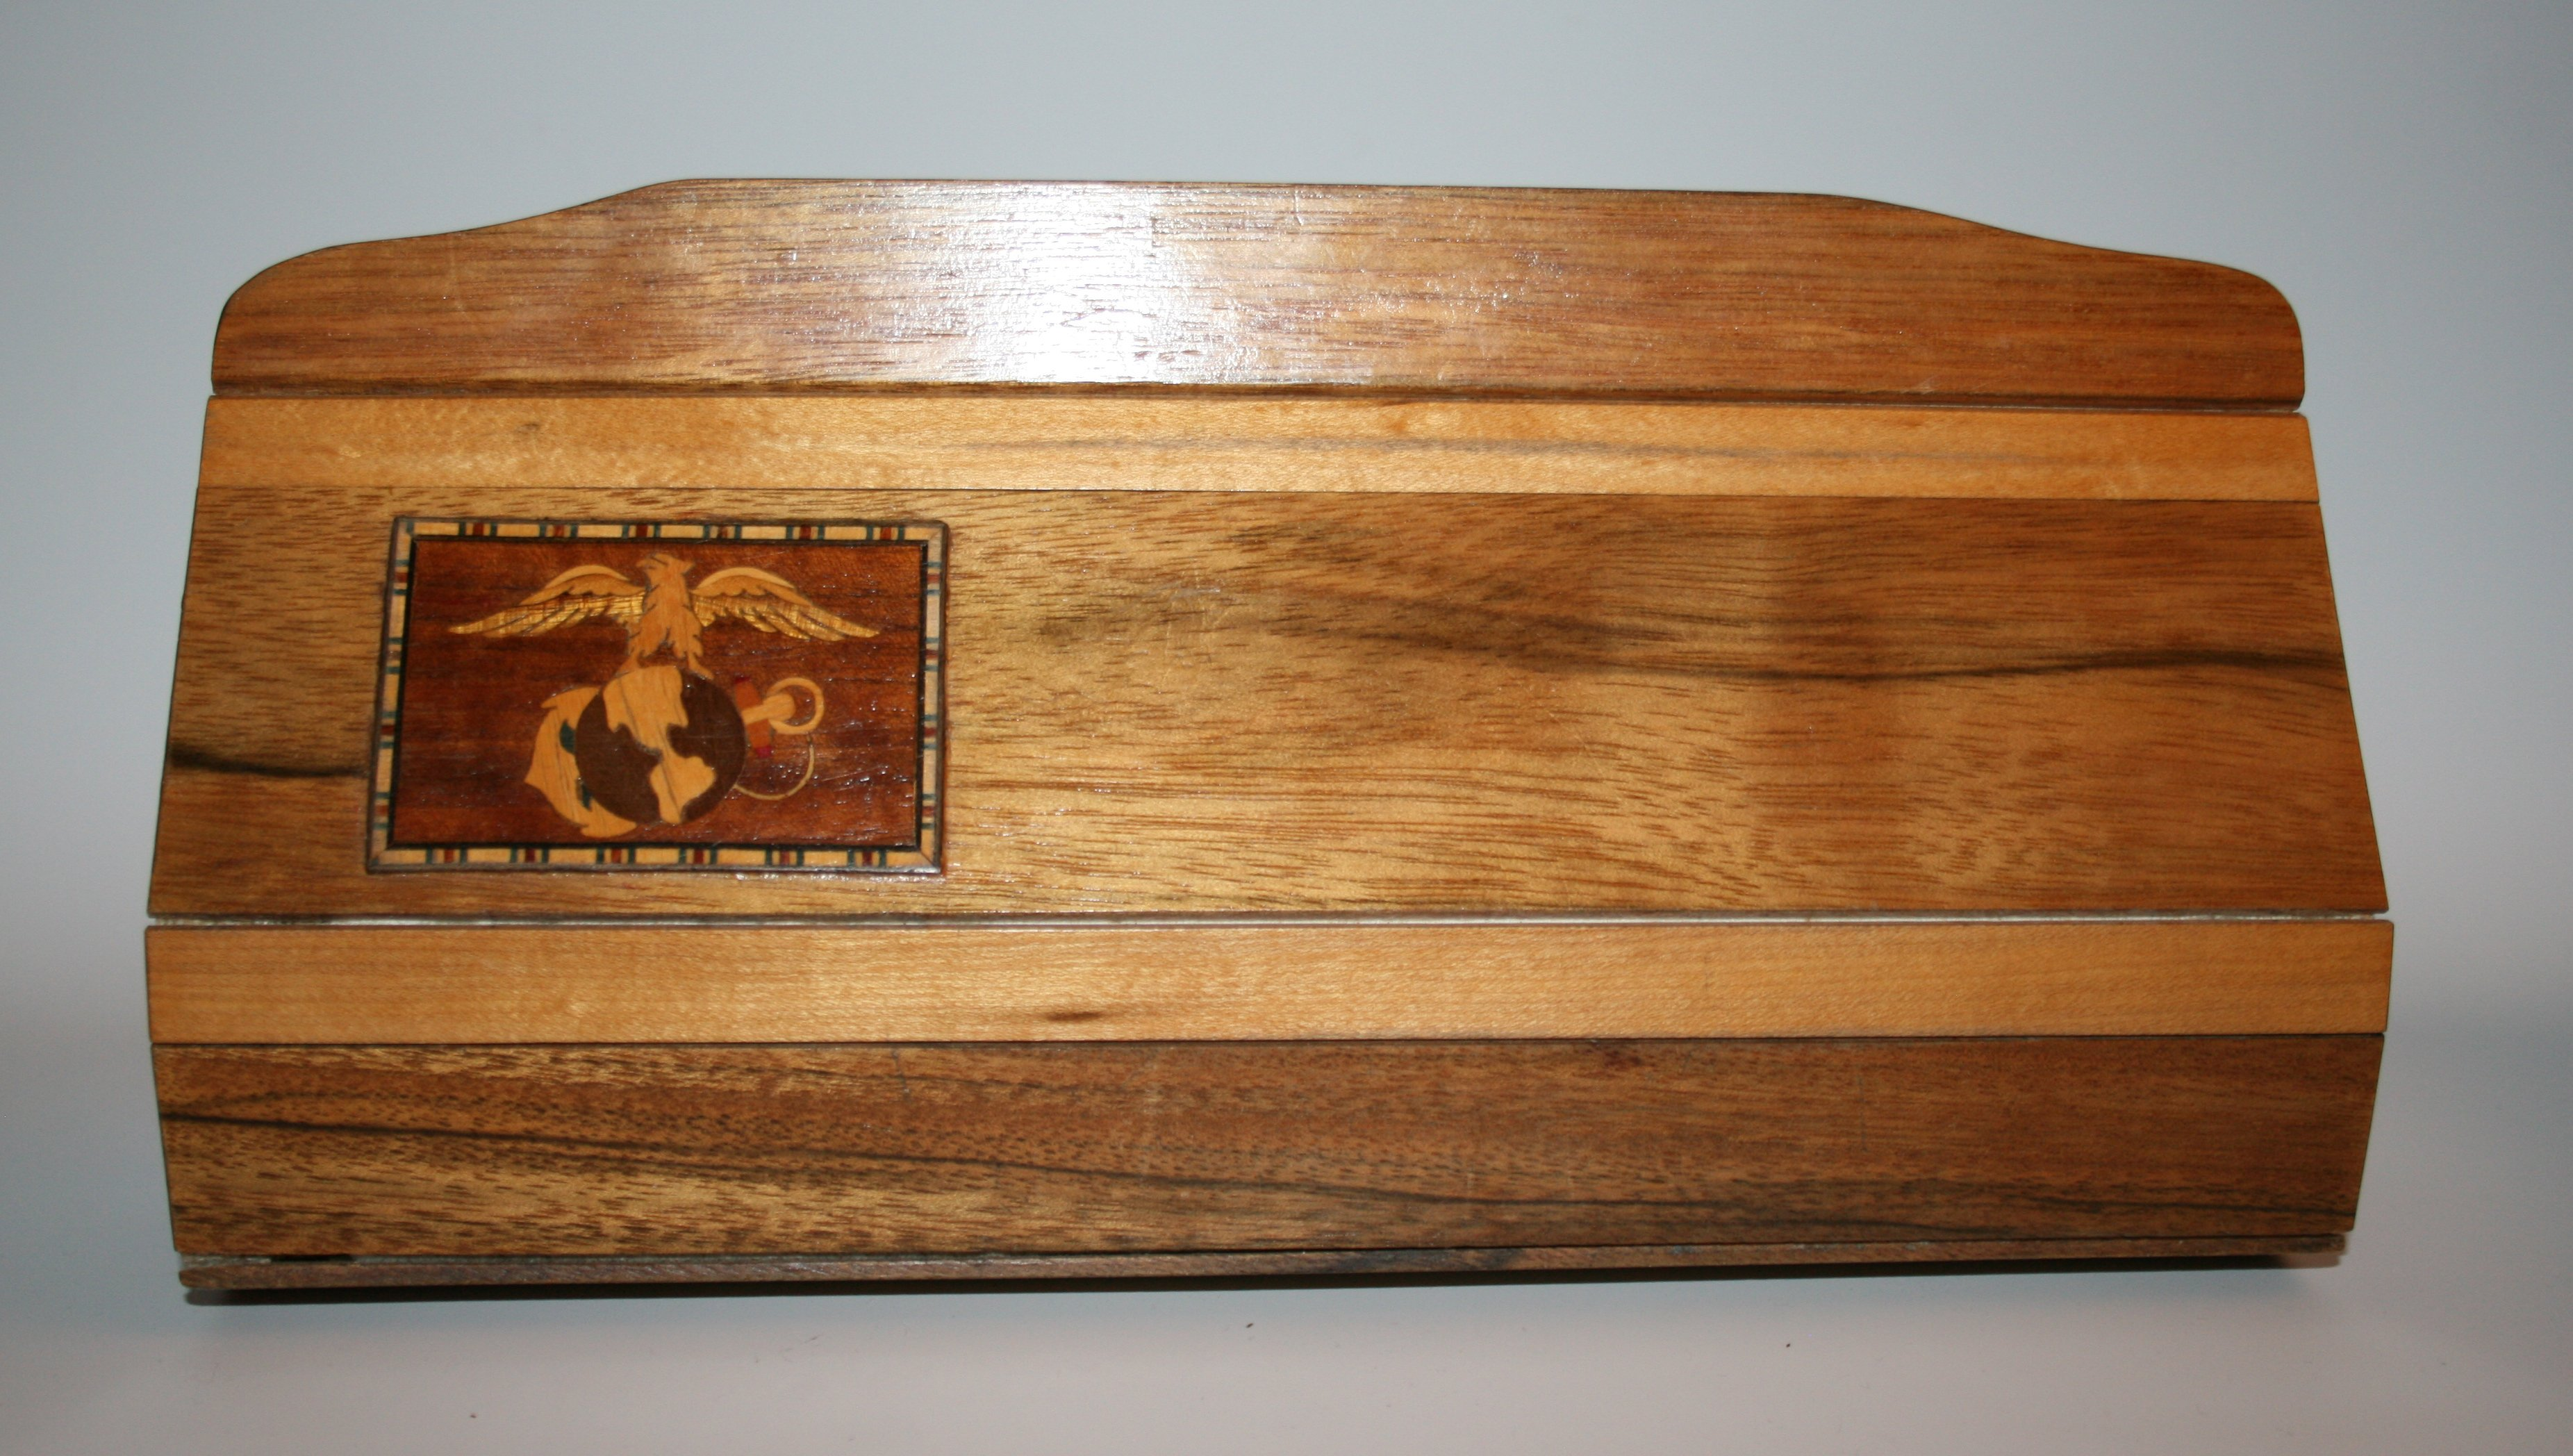 Wooden Purse with Marine Corps Emblem